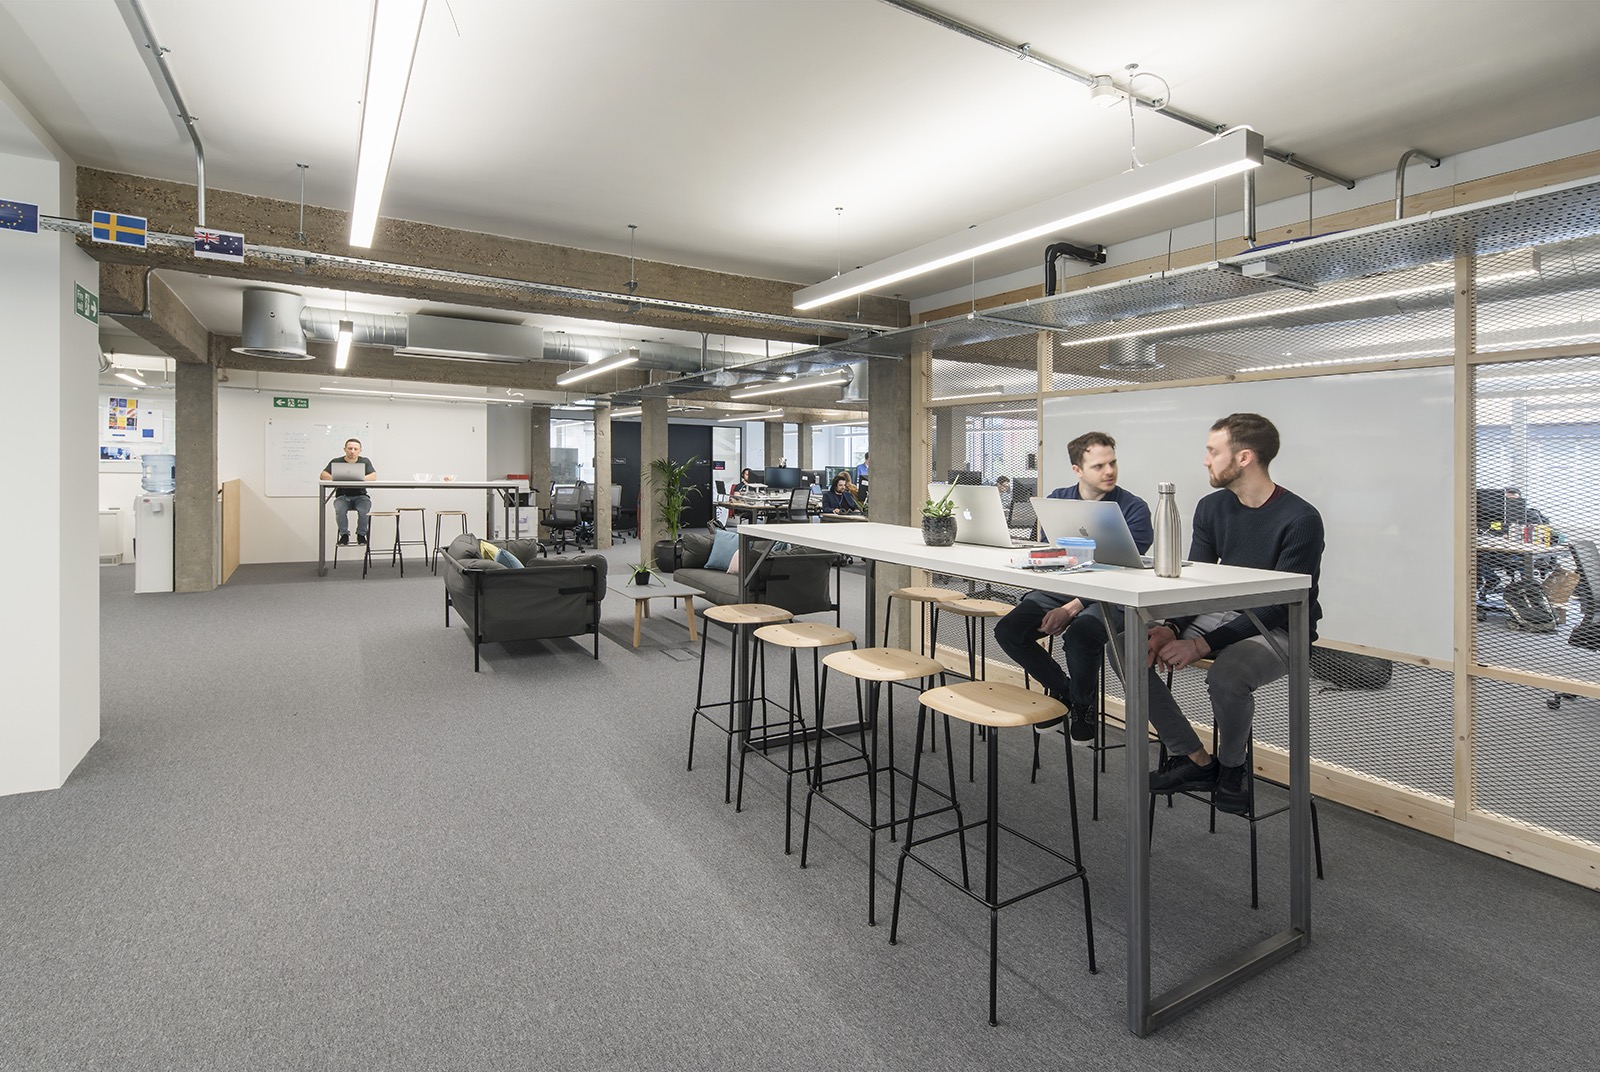 gocardless-london-office-8